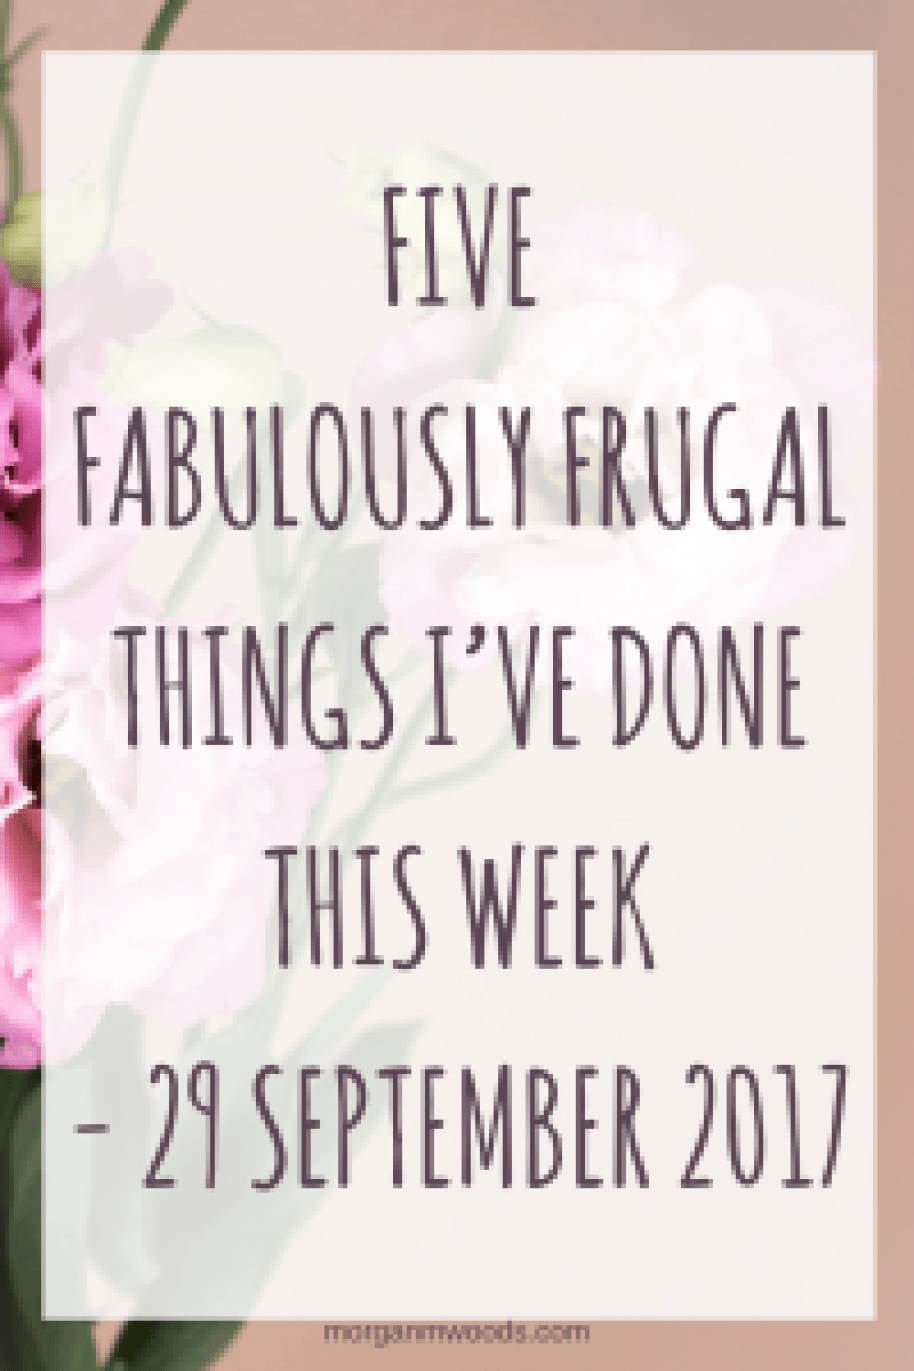 Five Fabulously Frugal Things I've Done This Week - 29 September 2017